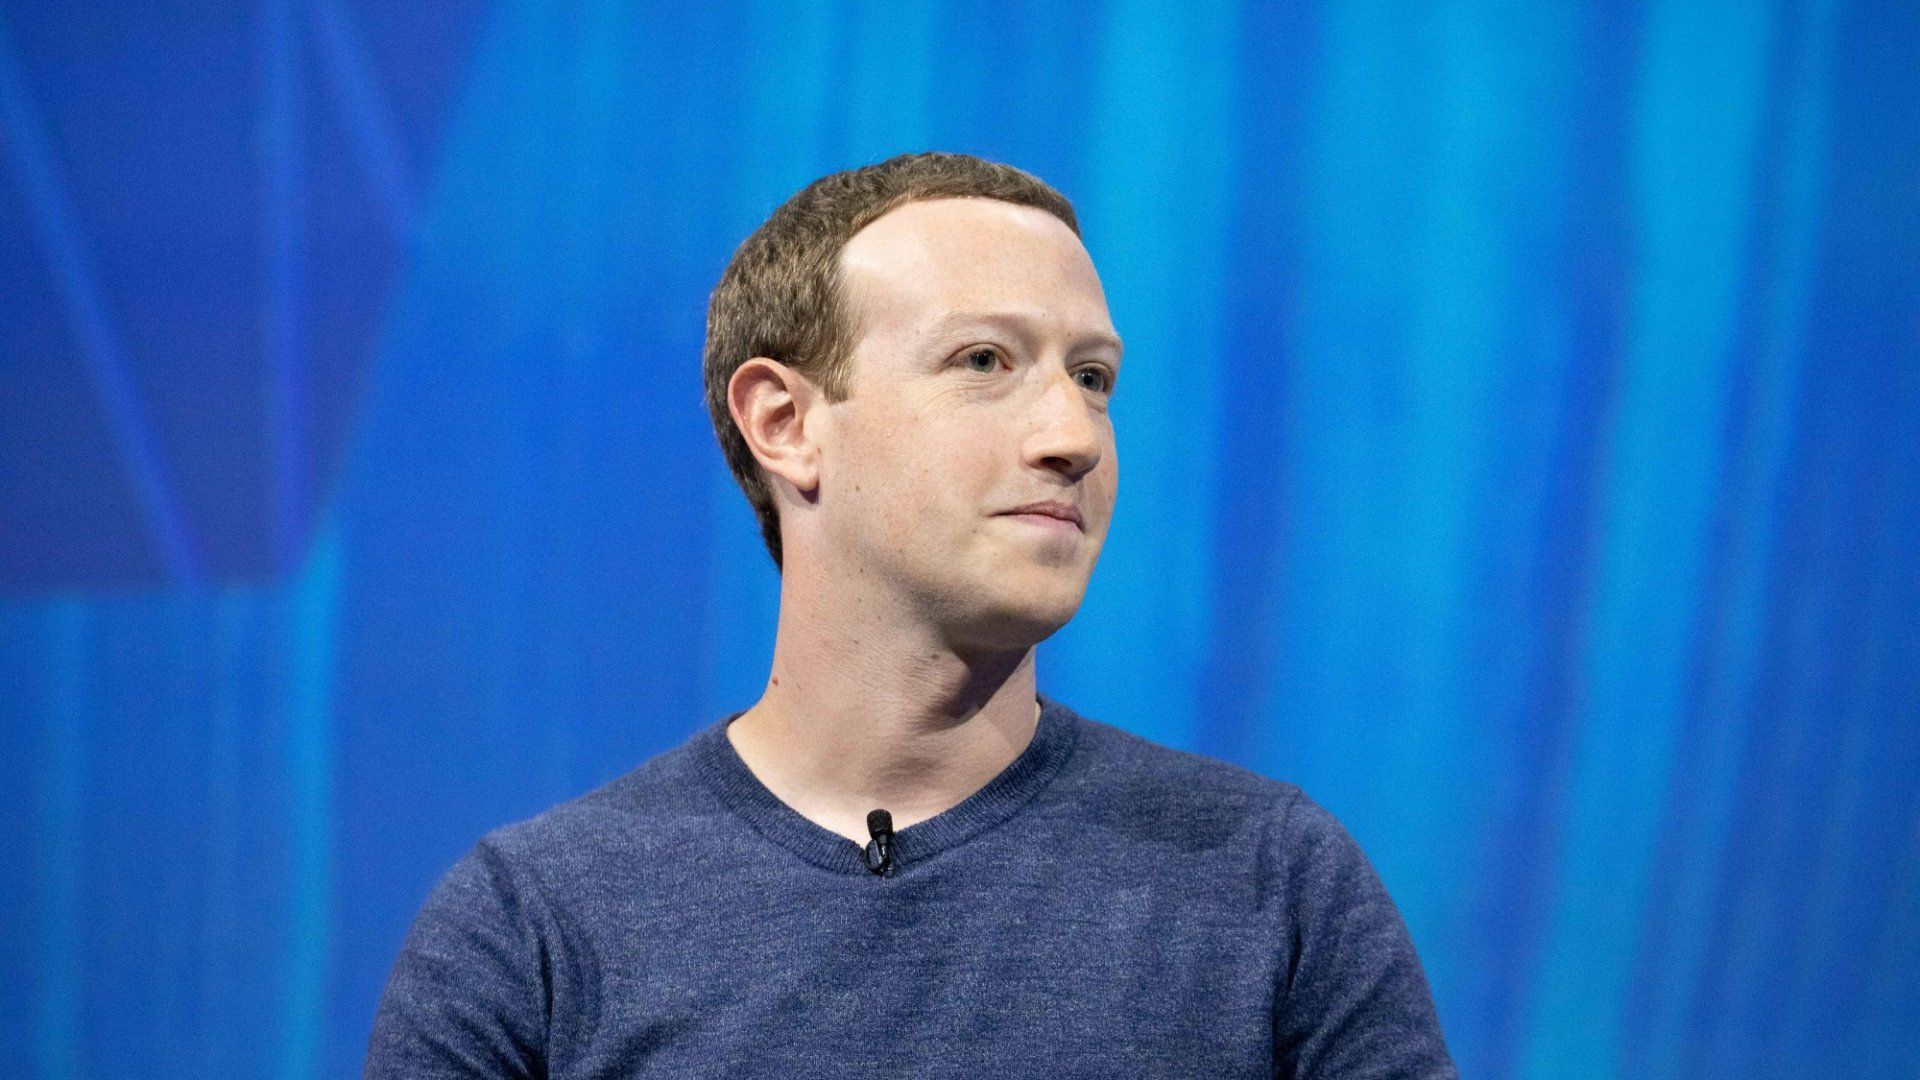 Facebook Investors Voted in Support of Proposals to Fire Mark Zuckerberg as Chairman, but Zuckerberg Still Holds Power